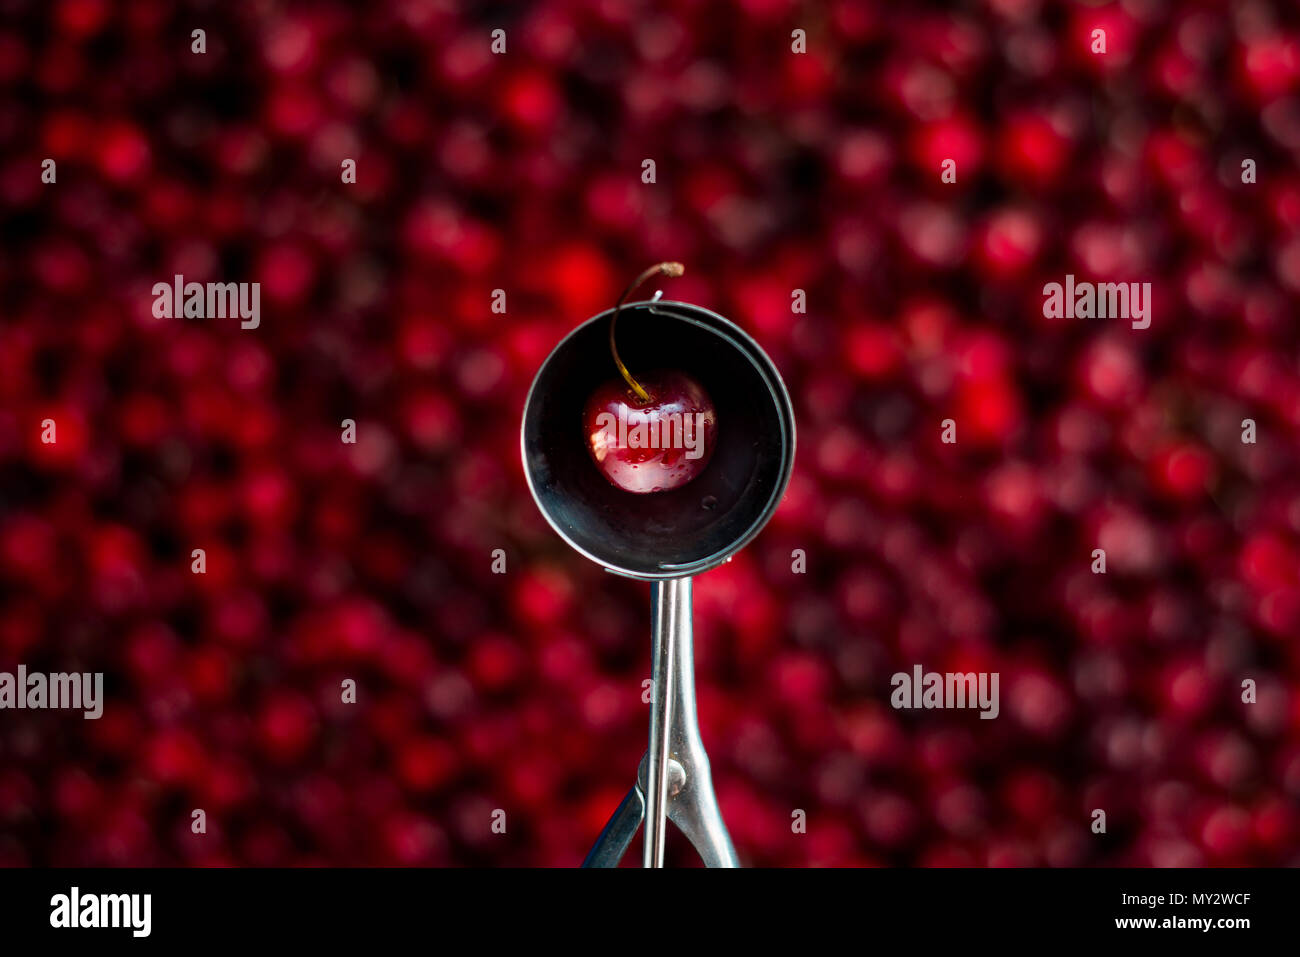 Fresh cherry in an ice cream spoon on out of focus berry background. Making ice cream concept with copy space. Stock Photo